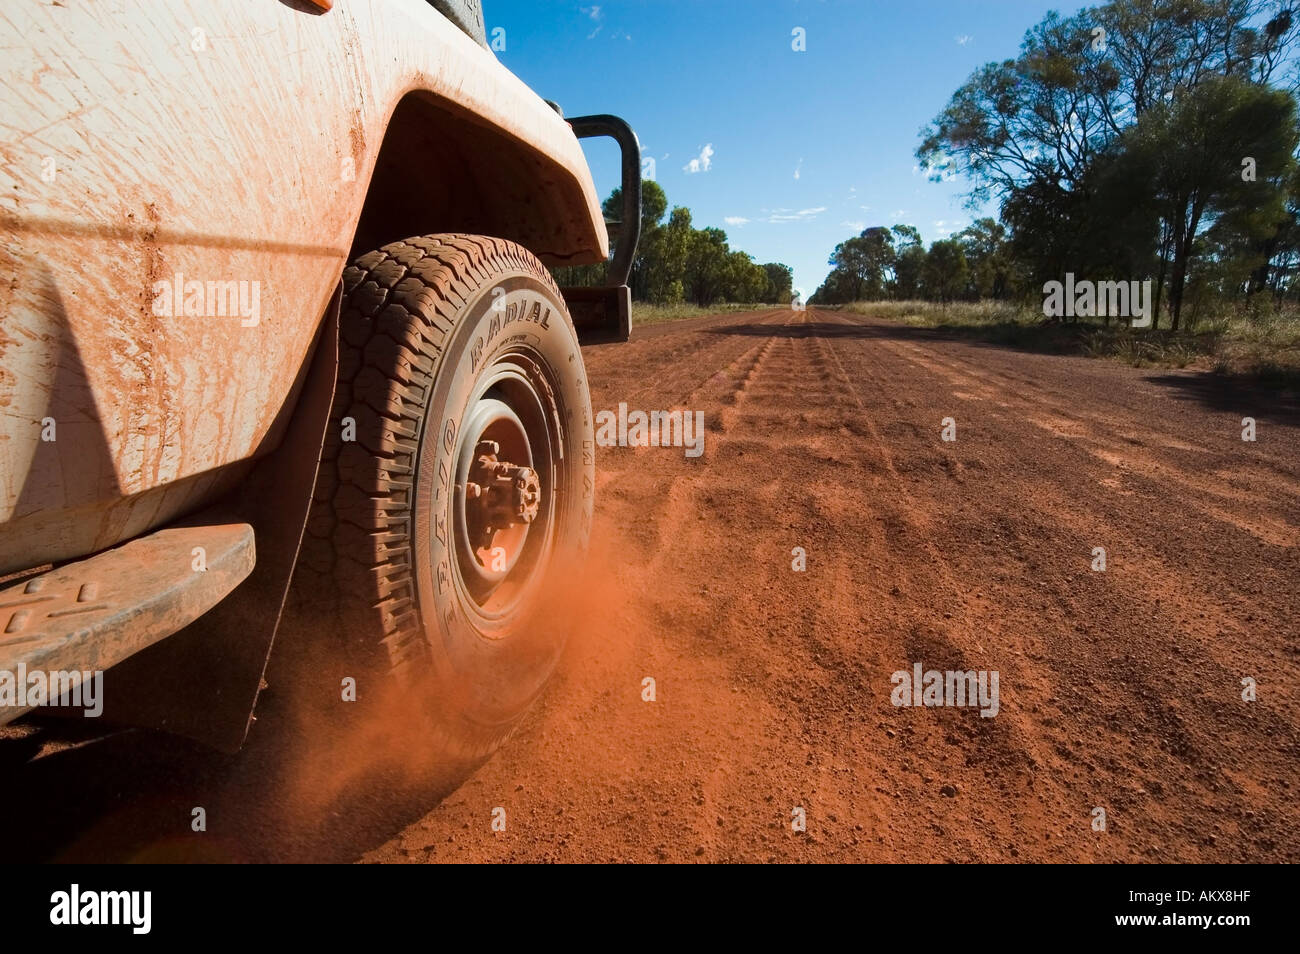 Offroad vehicle on red track, Australia - Stock Image